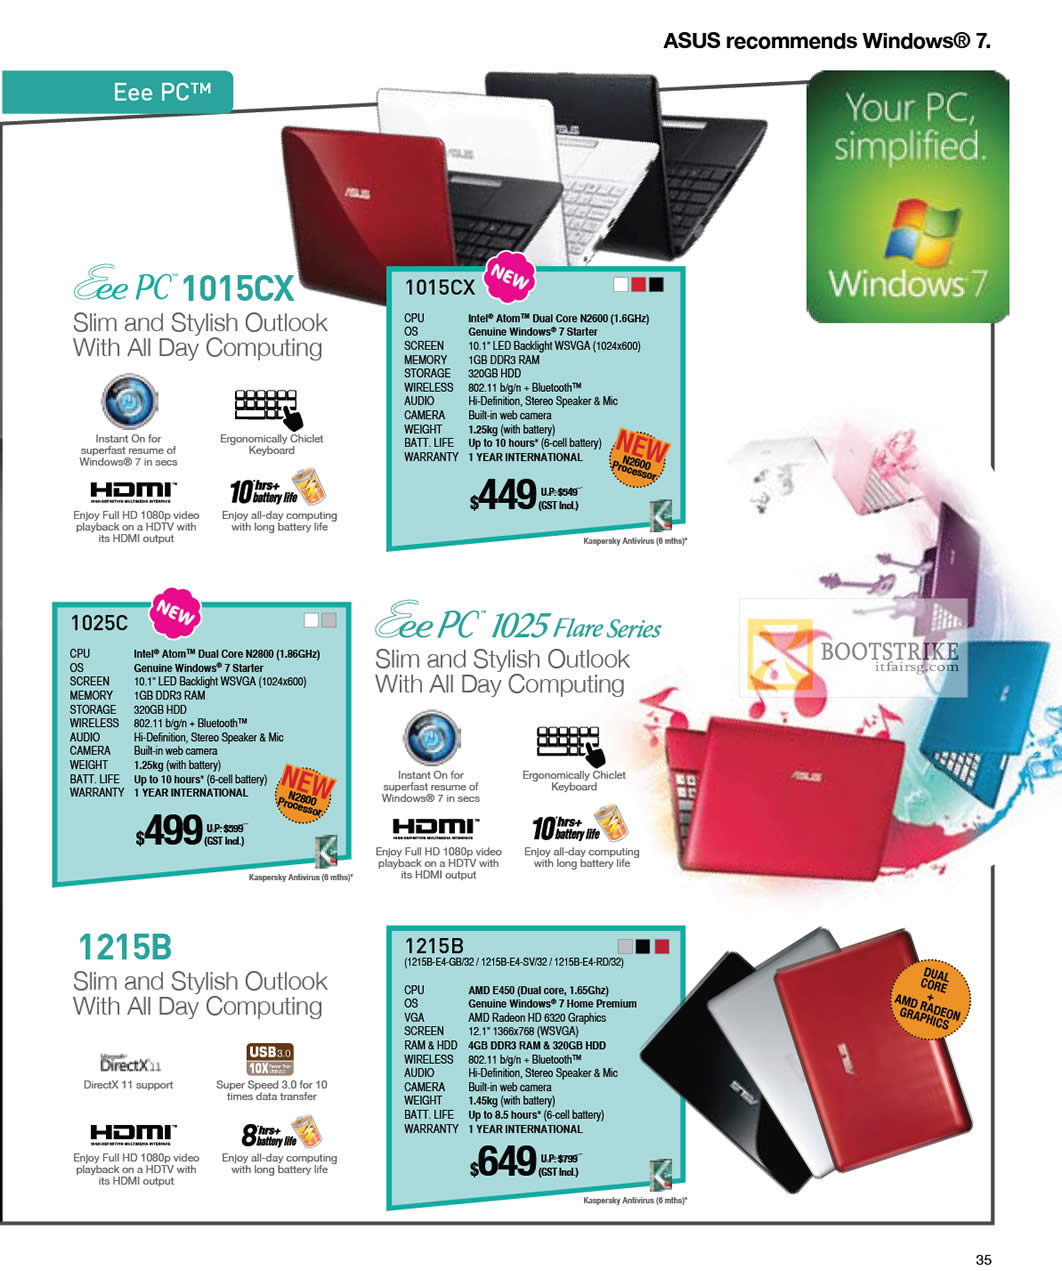 IT SHOW 2012 price list image brochure of ASUS Notebooks Eee PC Netbooks 1015CX, 1025C 1025 Flare Series, 1215B